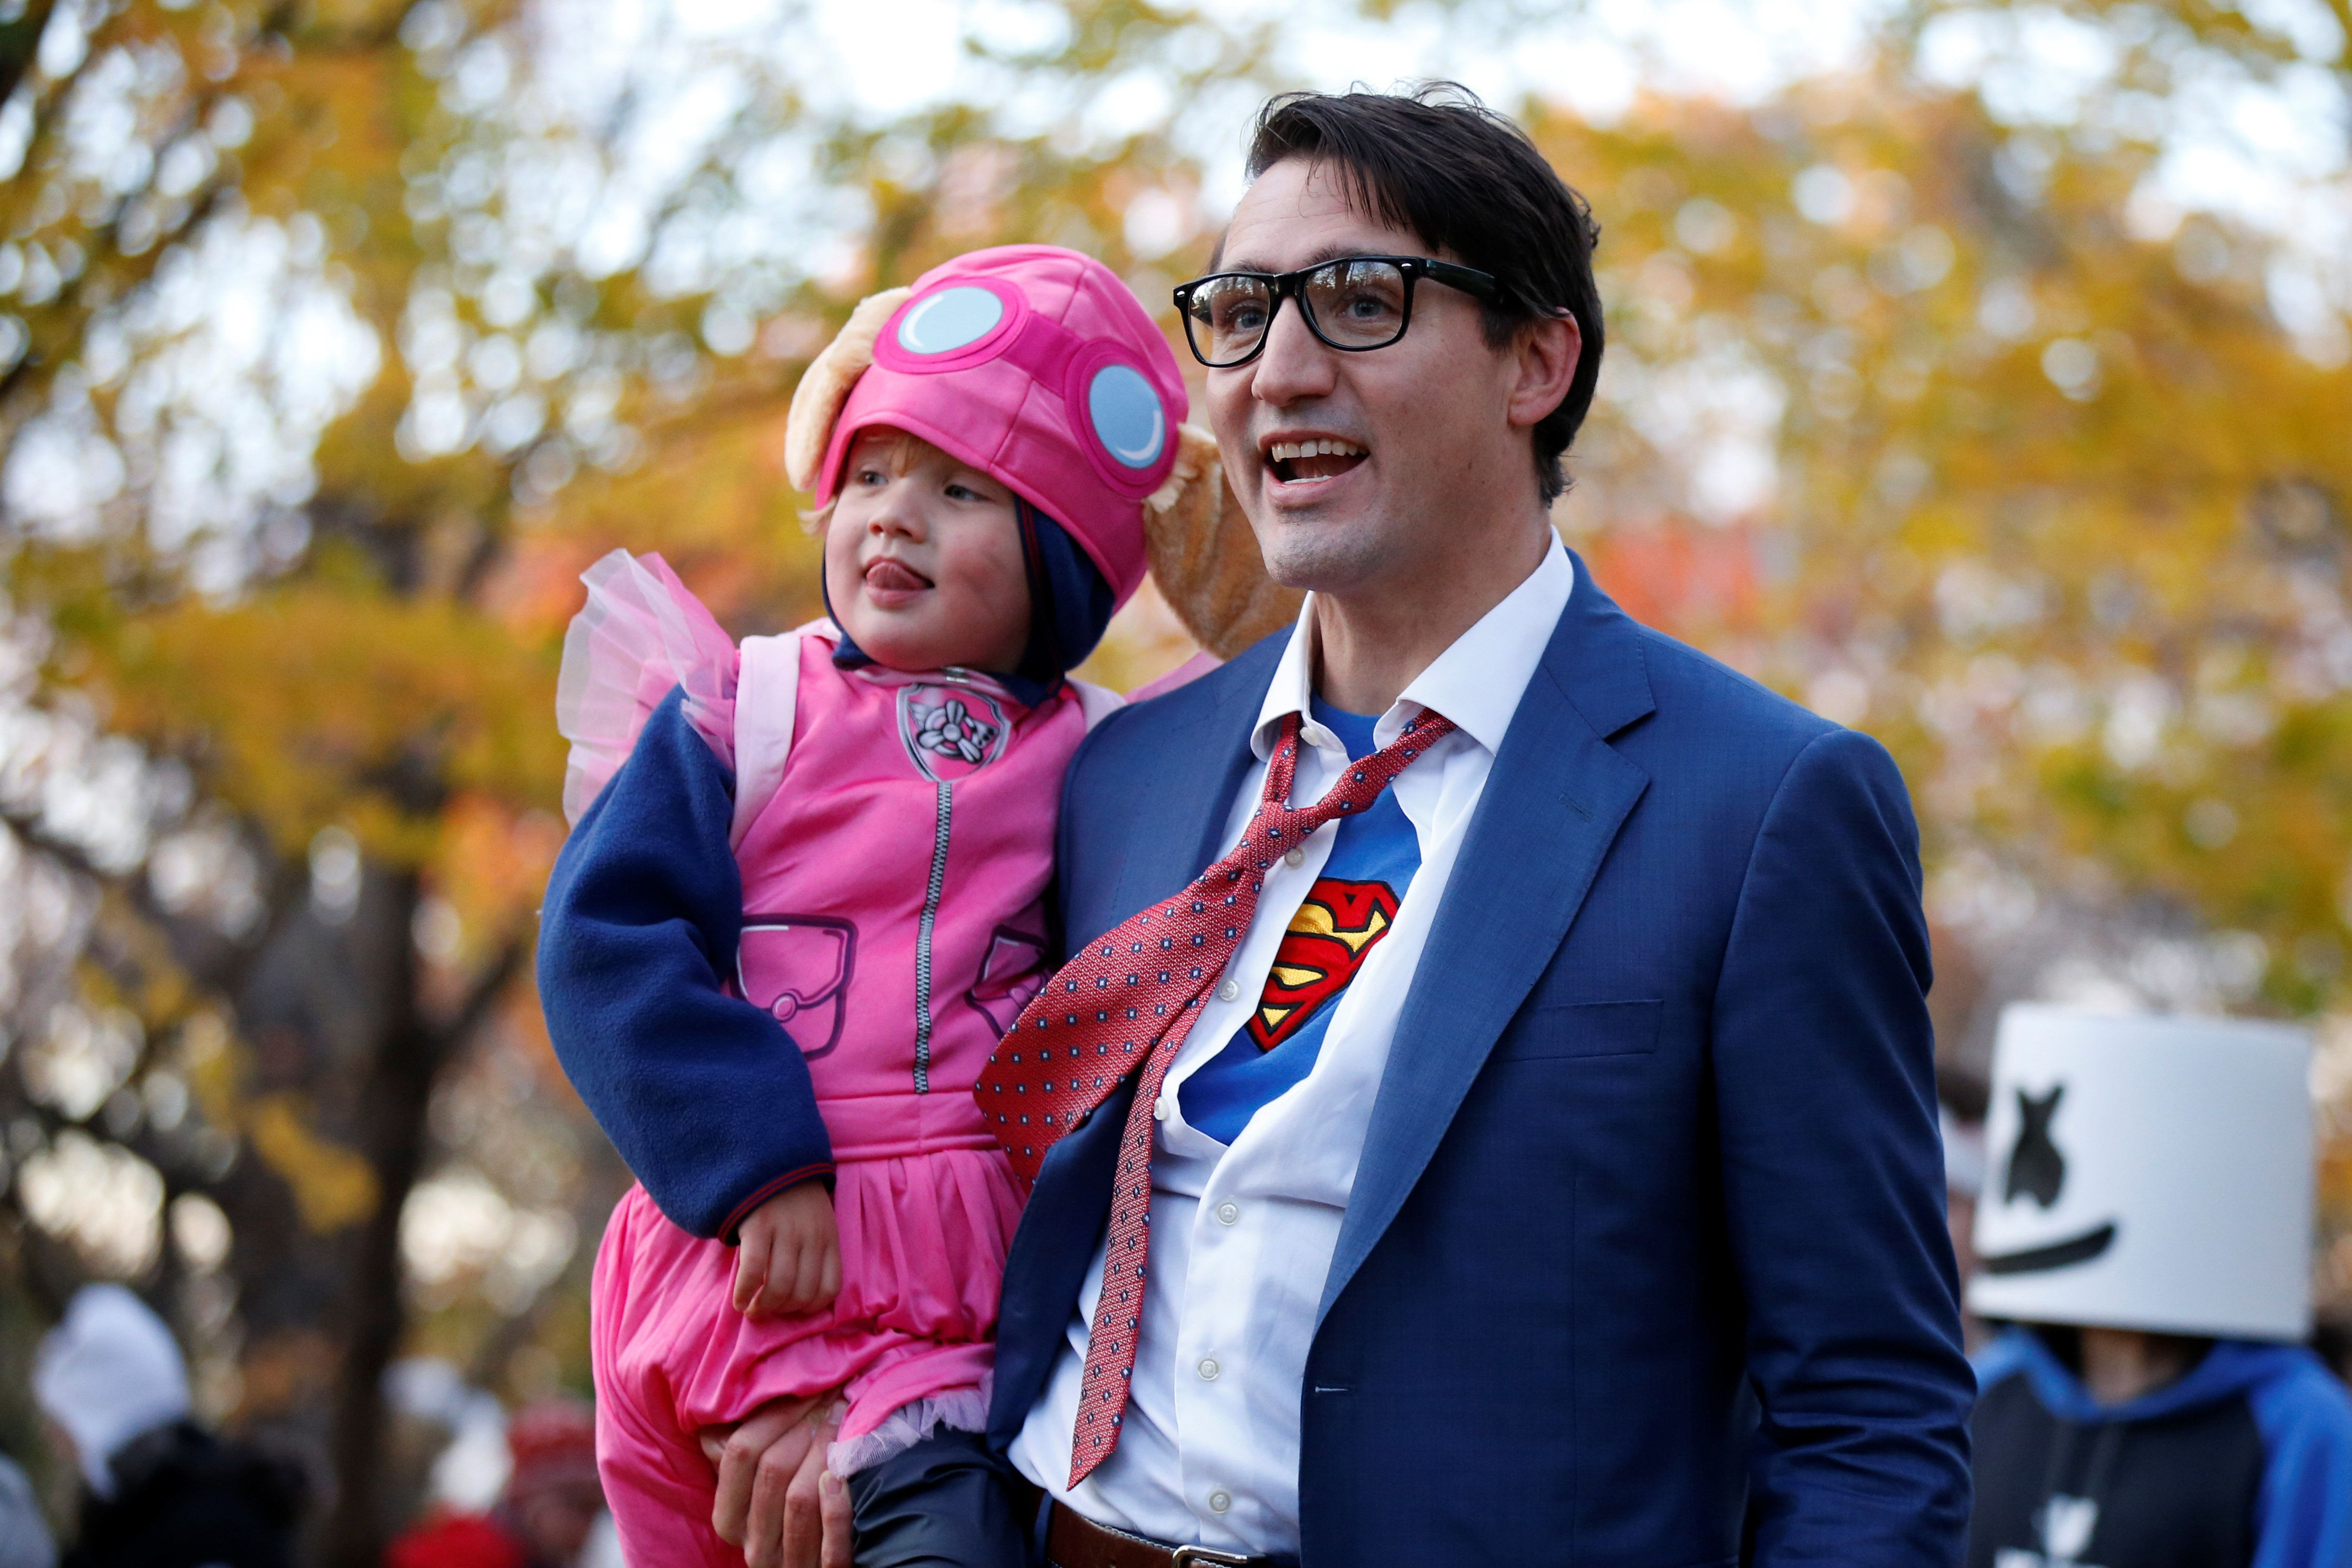 Canada's Prime Minister Justin Trudeau carries his son Hadrien while participating in Halloween festivities at Rideau Hall in Ottawa, Ontario, Canada, October 31, 2017. REUTERS/Chris Wattie